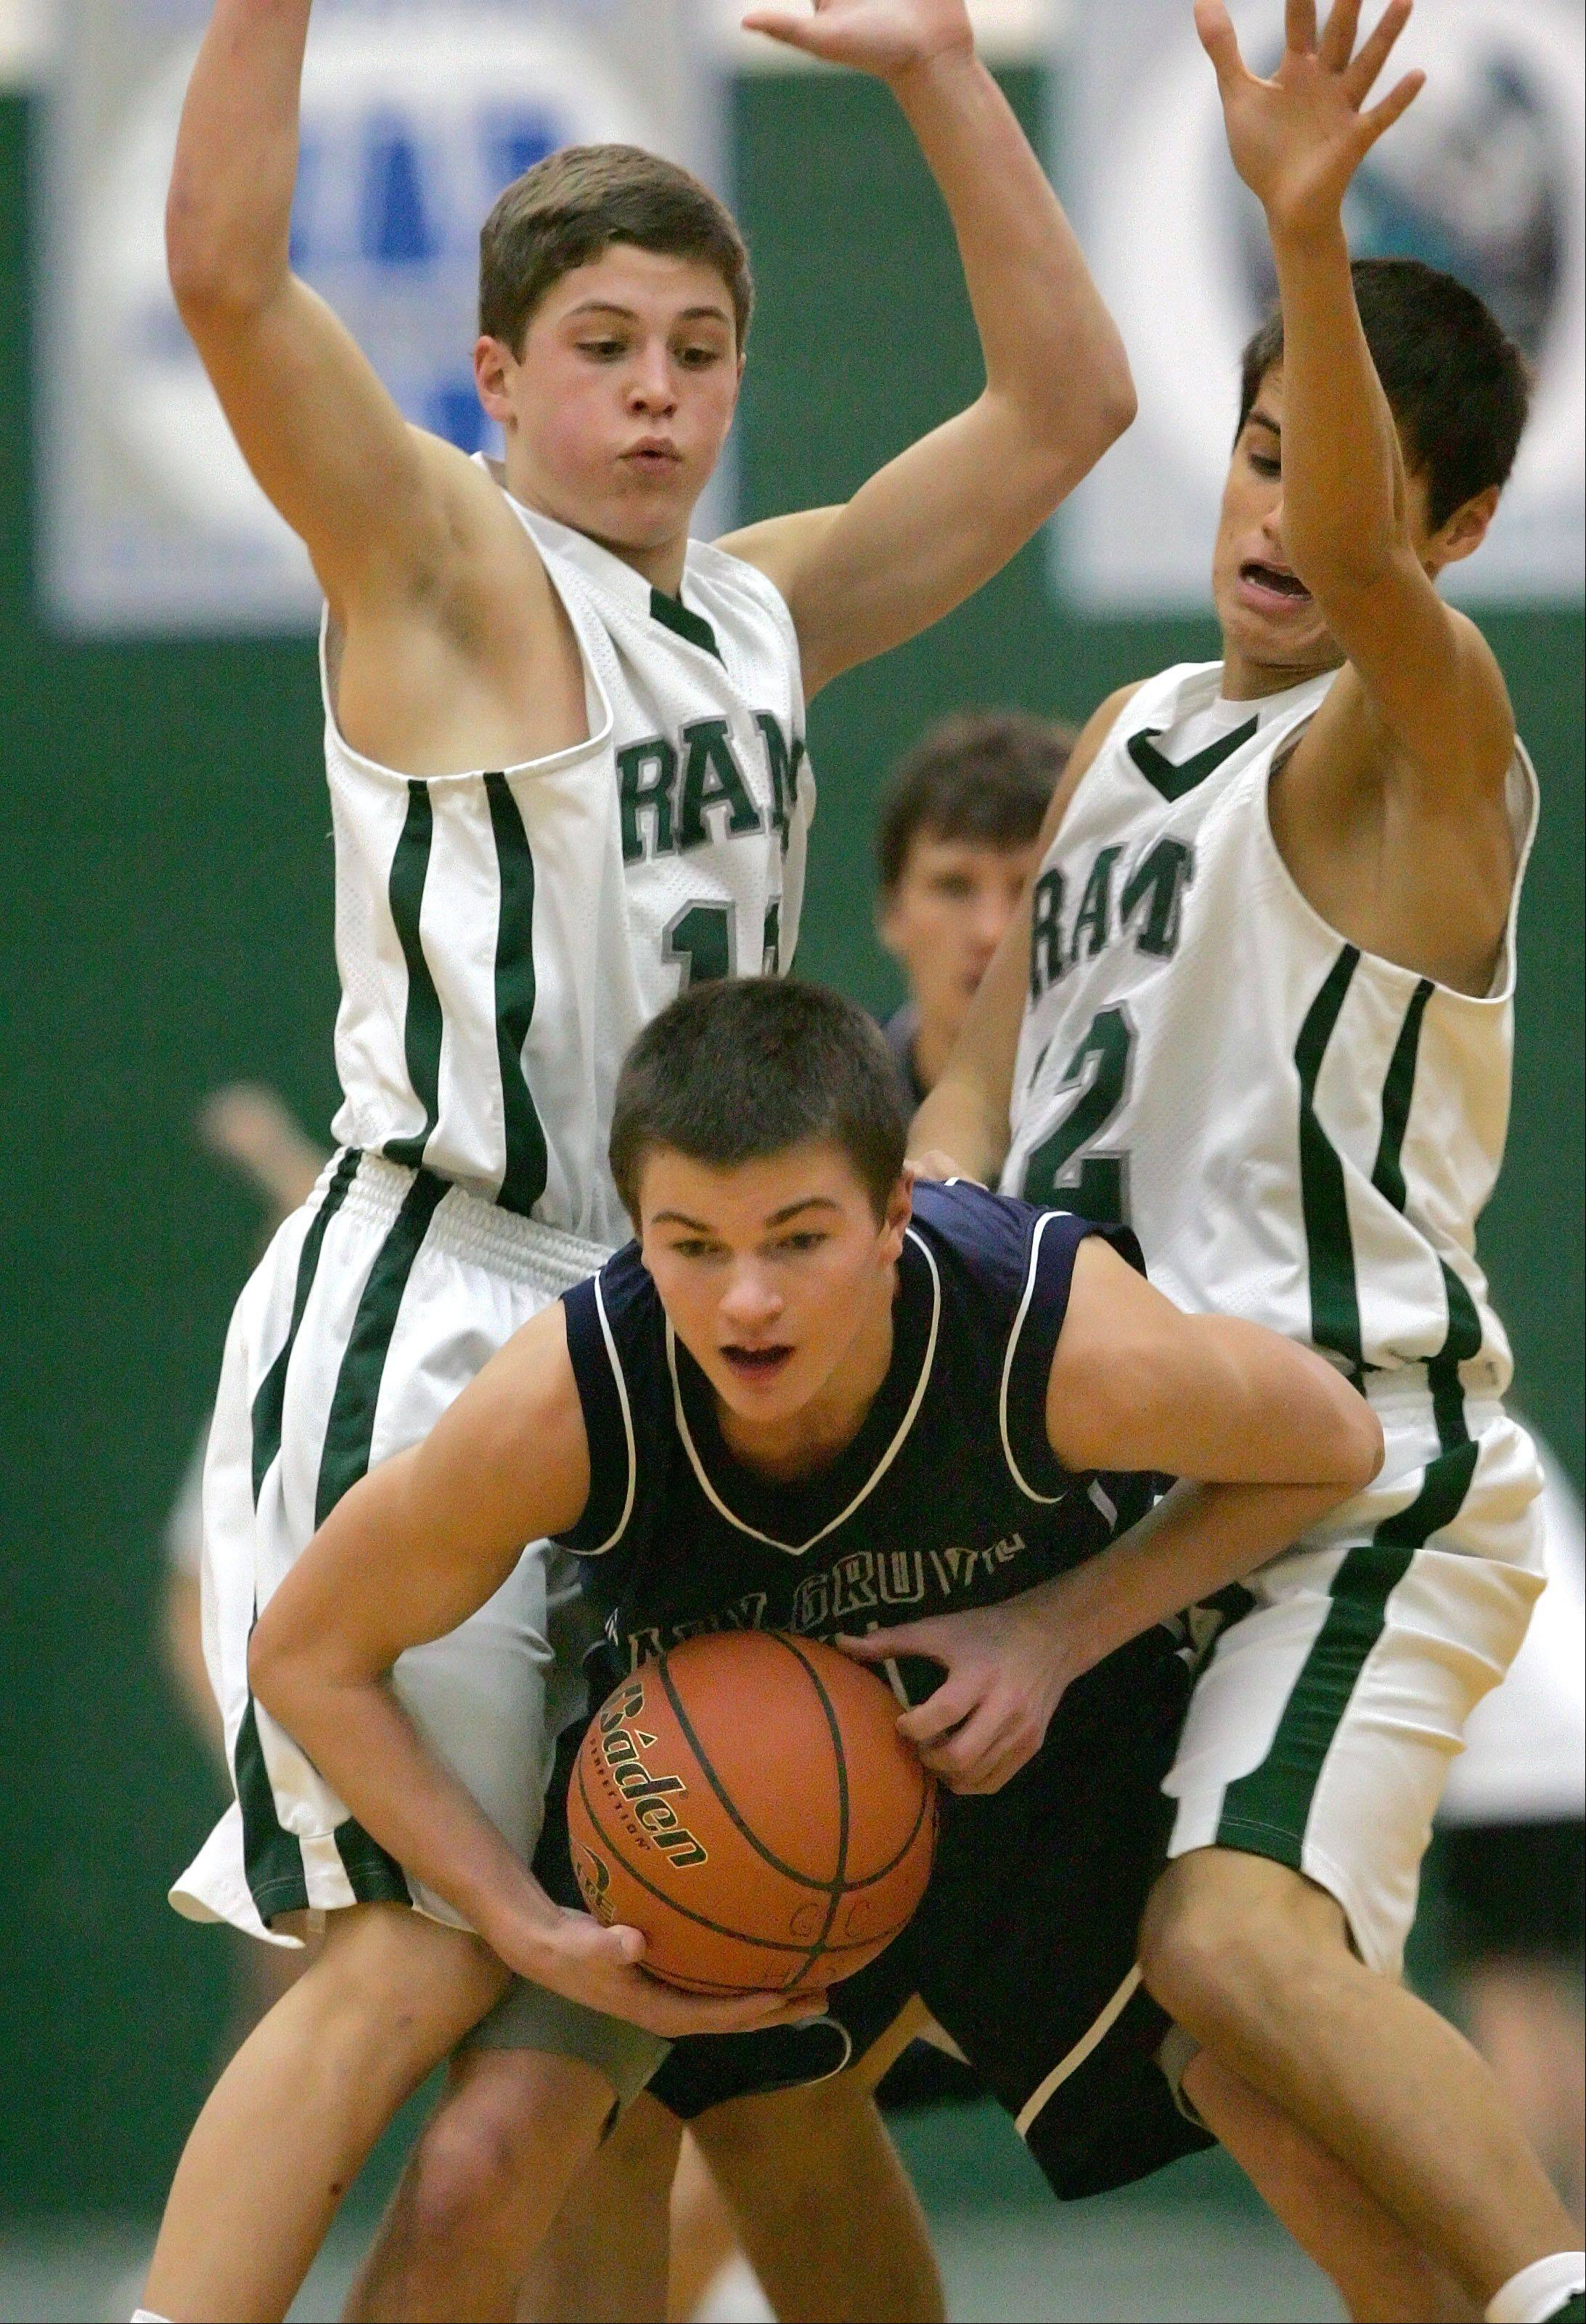 Grayslake Central's Joey Mudd, left, and Kevin Orozco double team Cary-Grove's Ian May on Tuesday night at Grayslake Central.